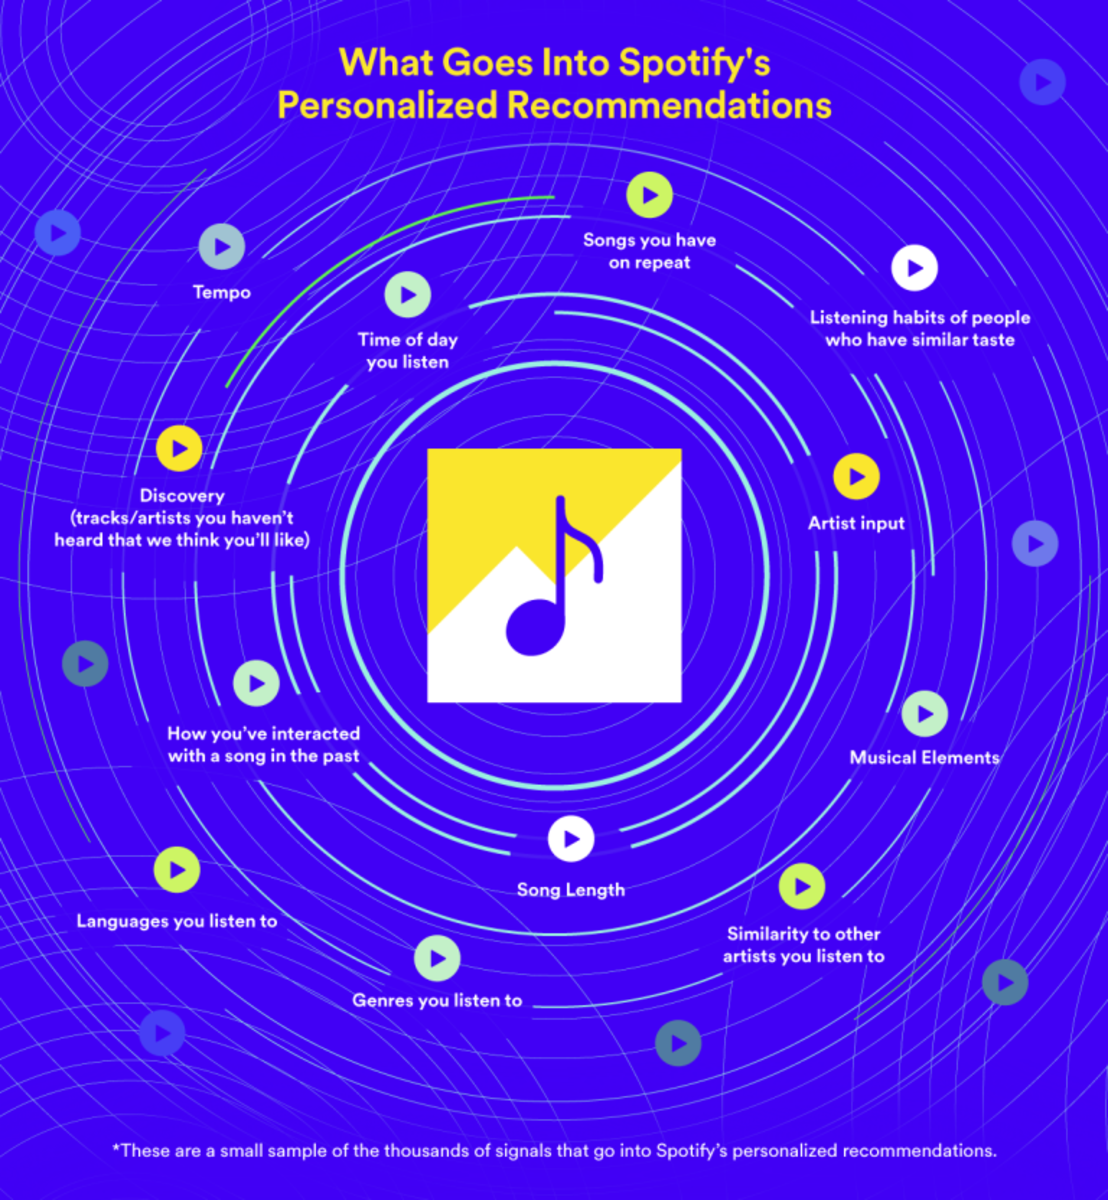 Infographic depicting what goes into Spotify's personalized recommendations.